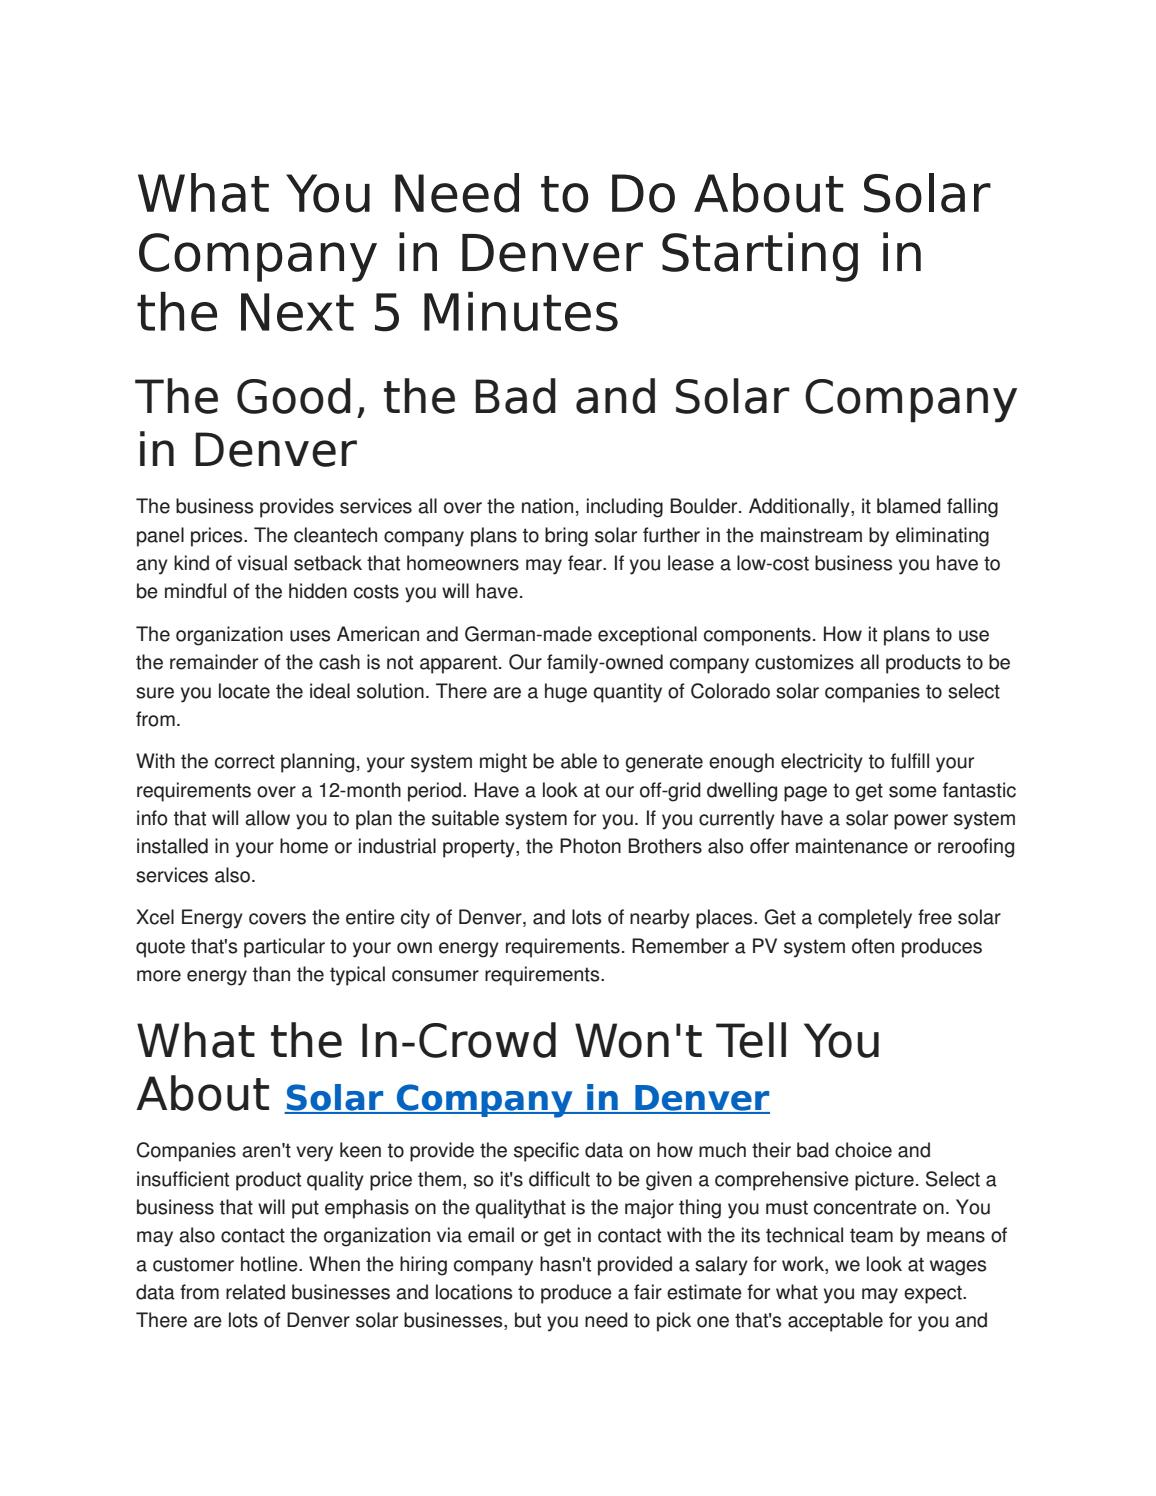 What You Need to Do About Solar Company in Denver Starting